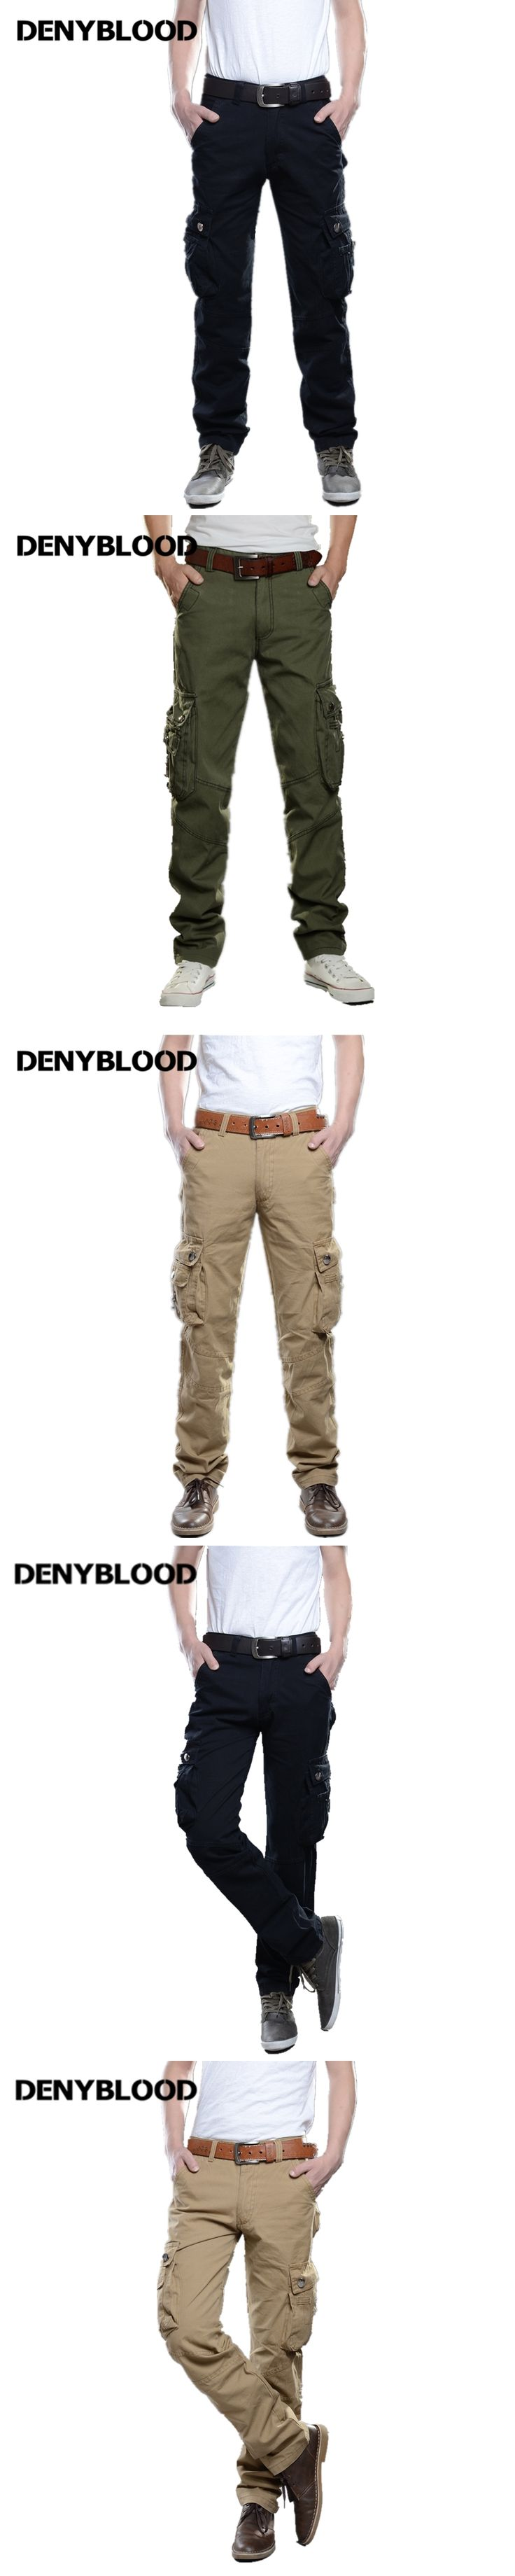 Denyblood Jeans Mens Cargo Pants Khaki Chinos Cotton Twill Army Green Military Working Clothing Casual Pants Straight 2187